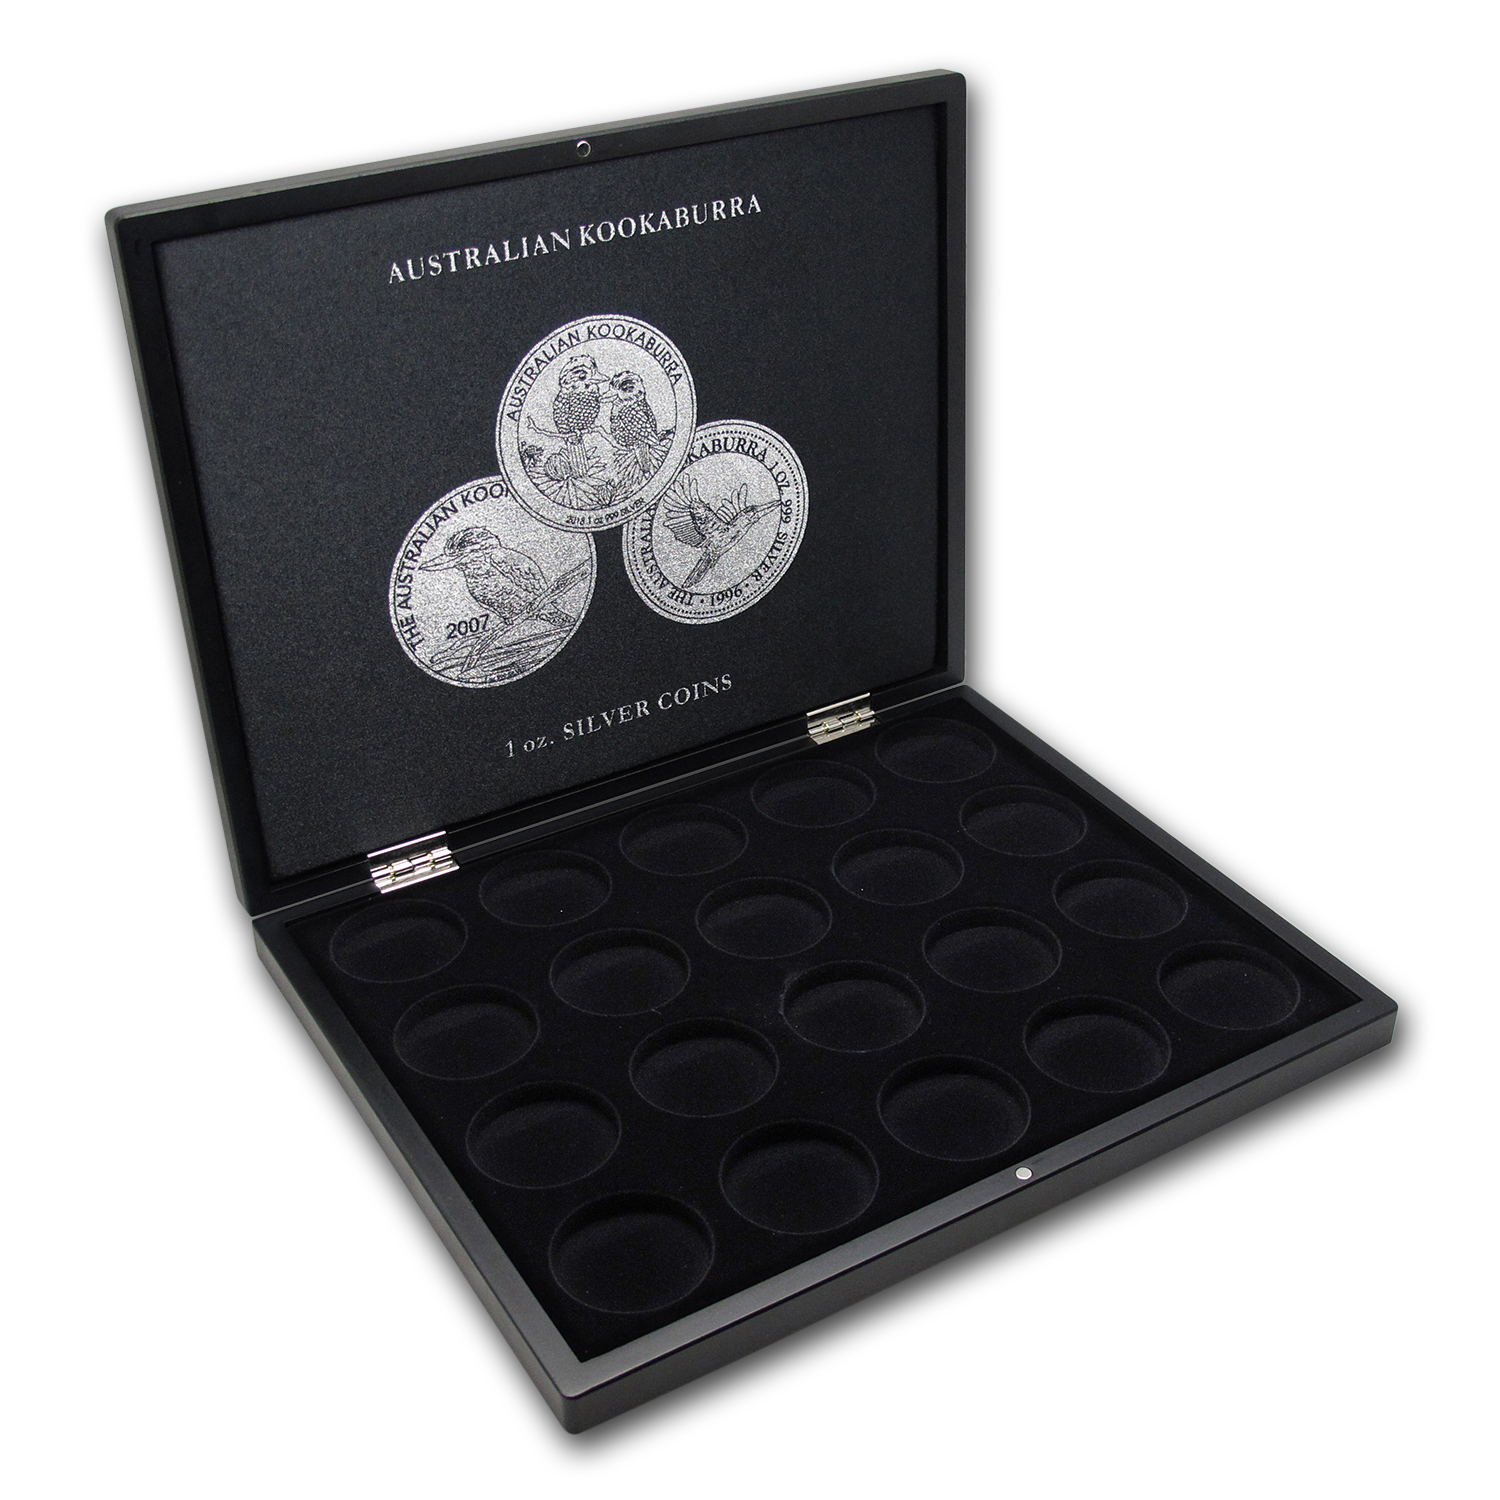 1 oz Australian Silver Kookaburra 20-Piece Black Presentation Box